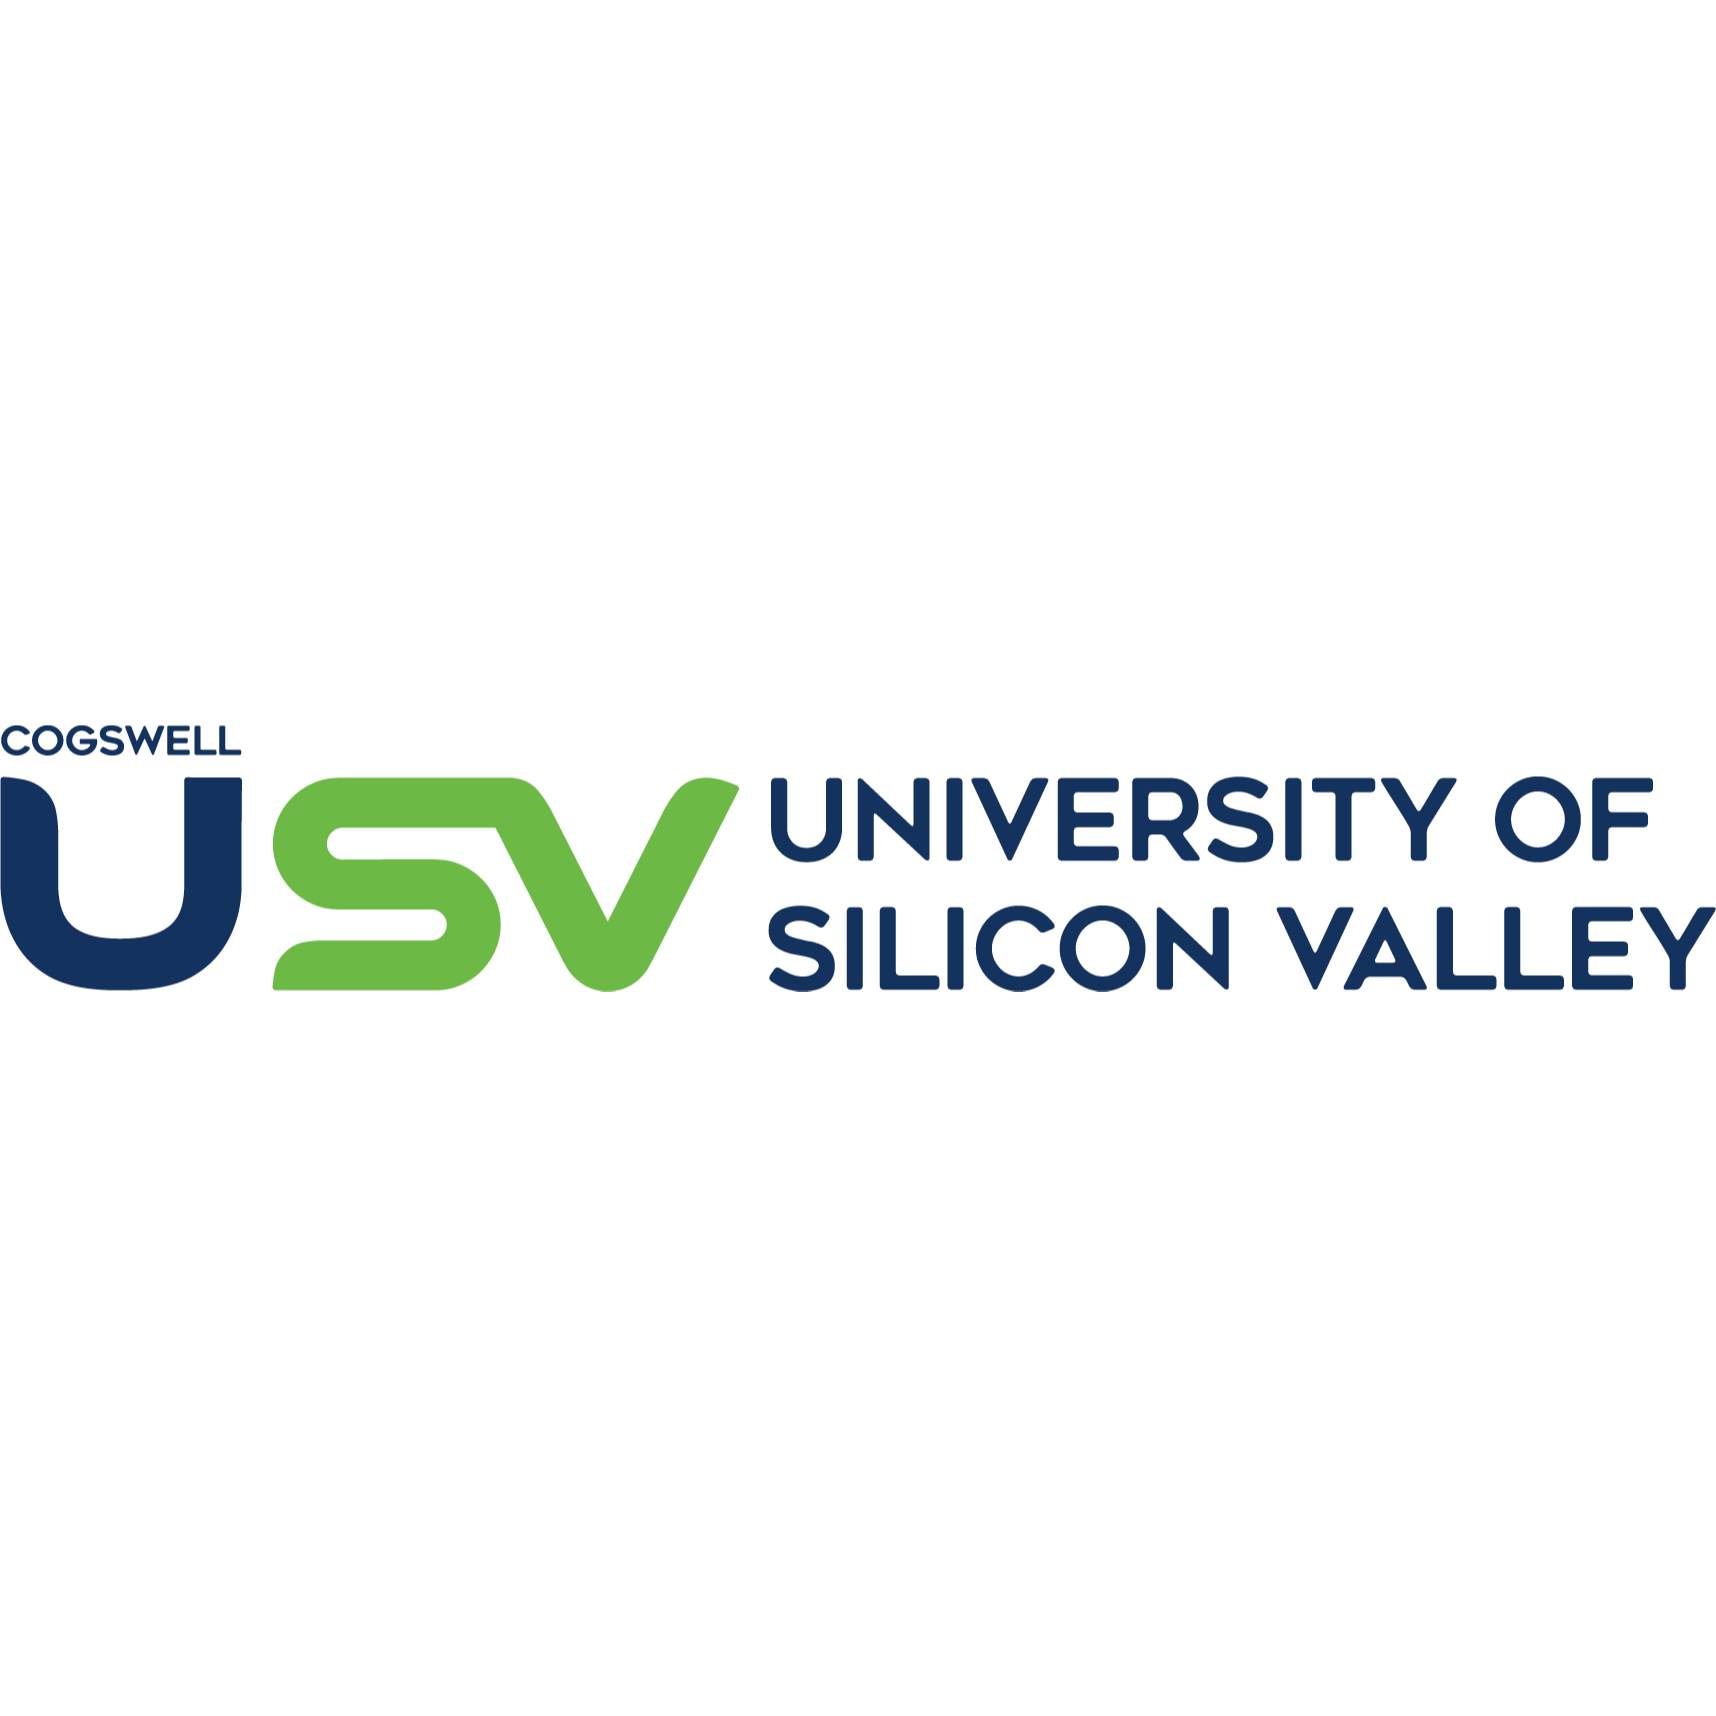 University of Silicon Valley